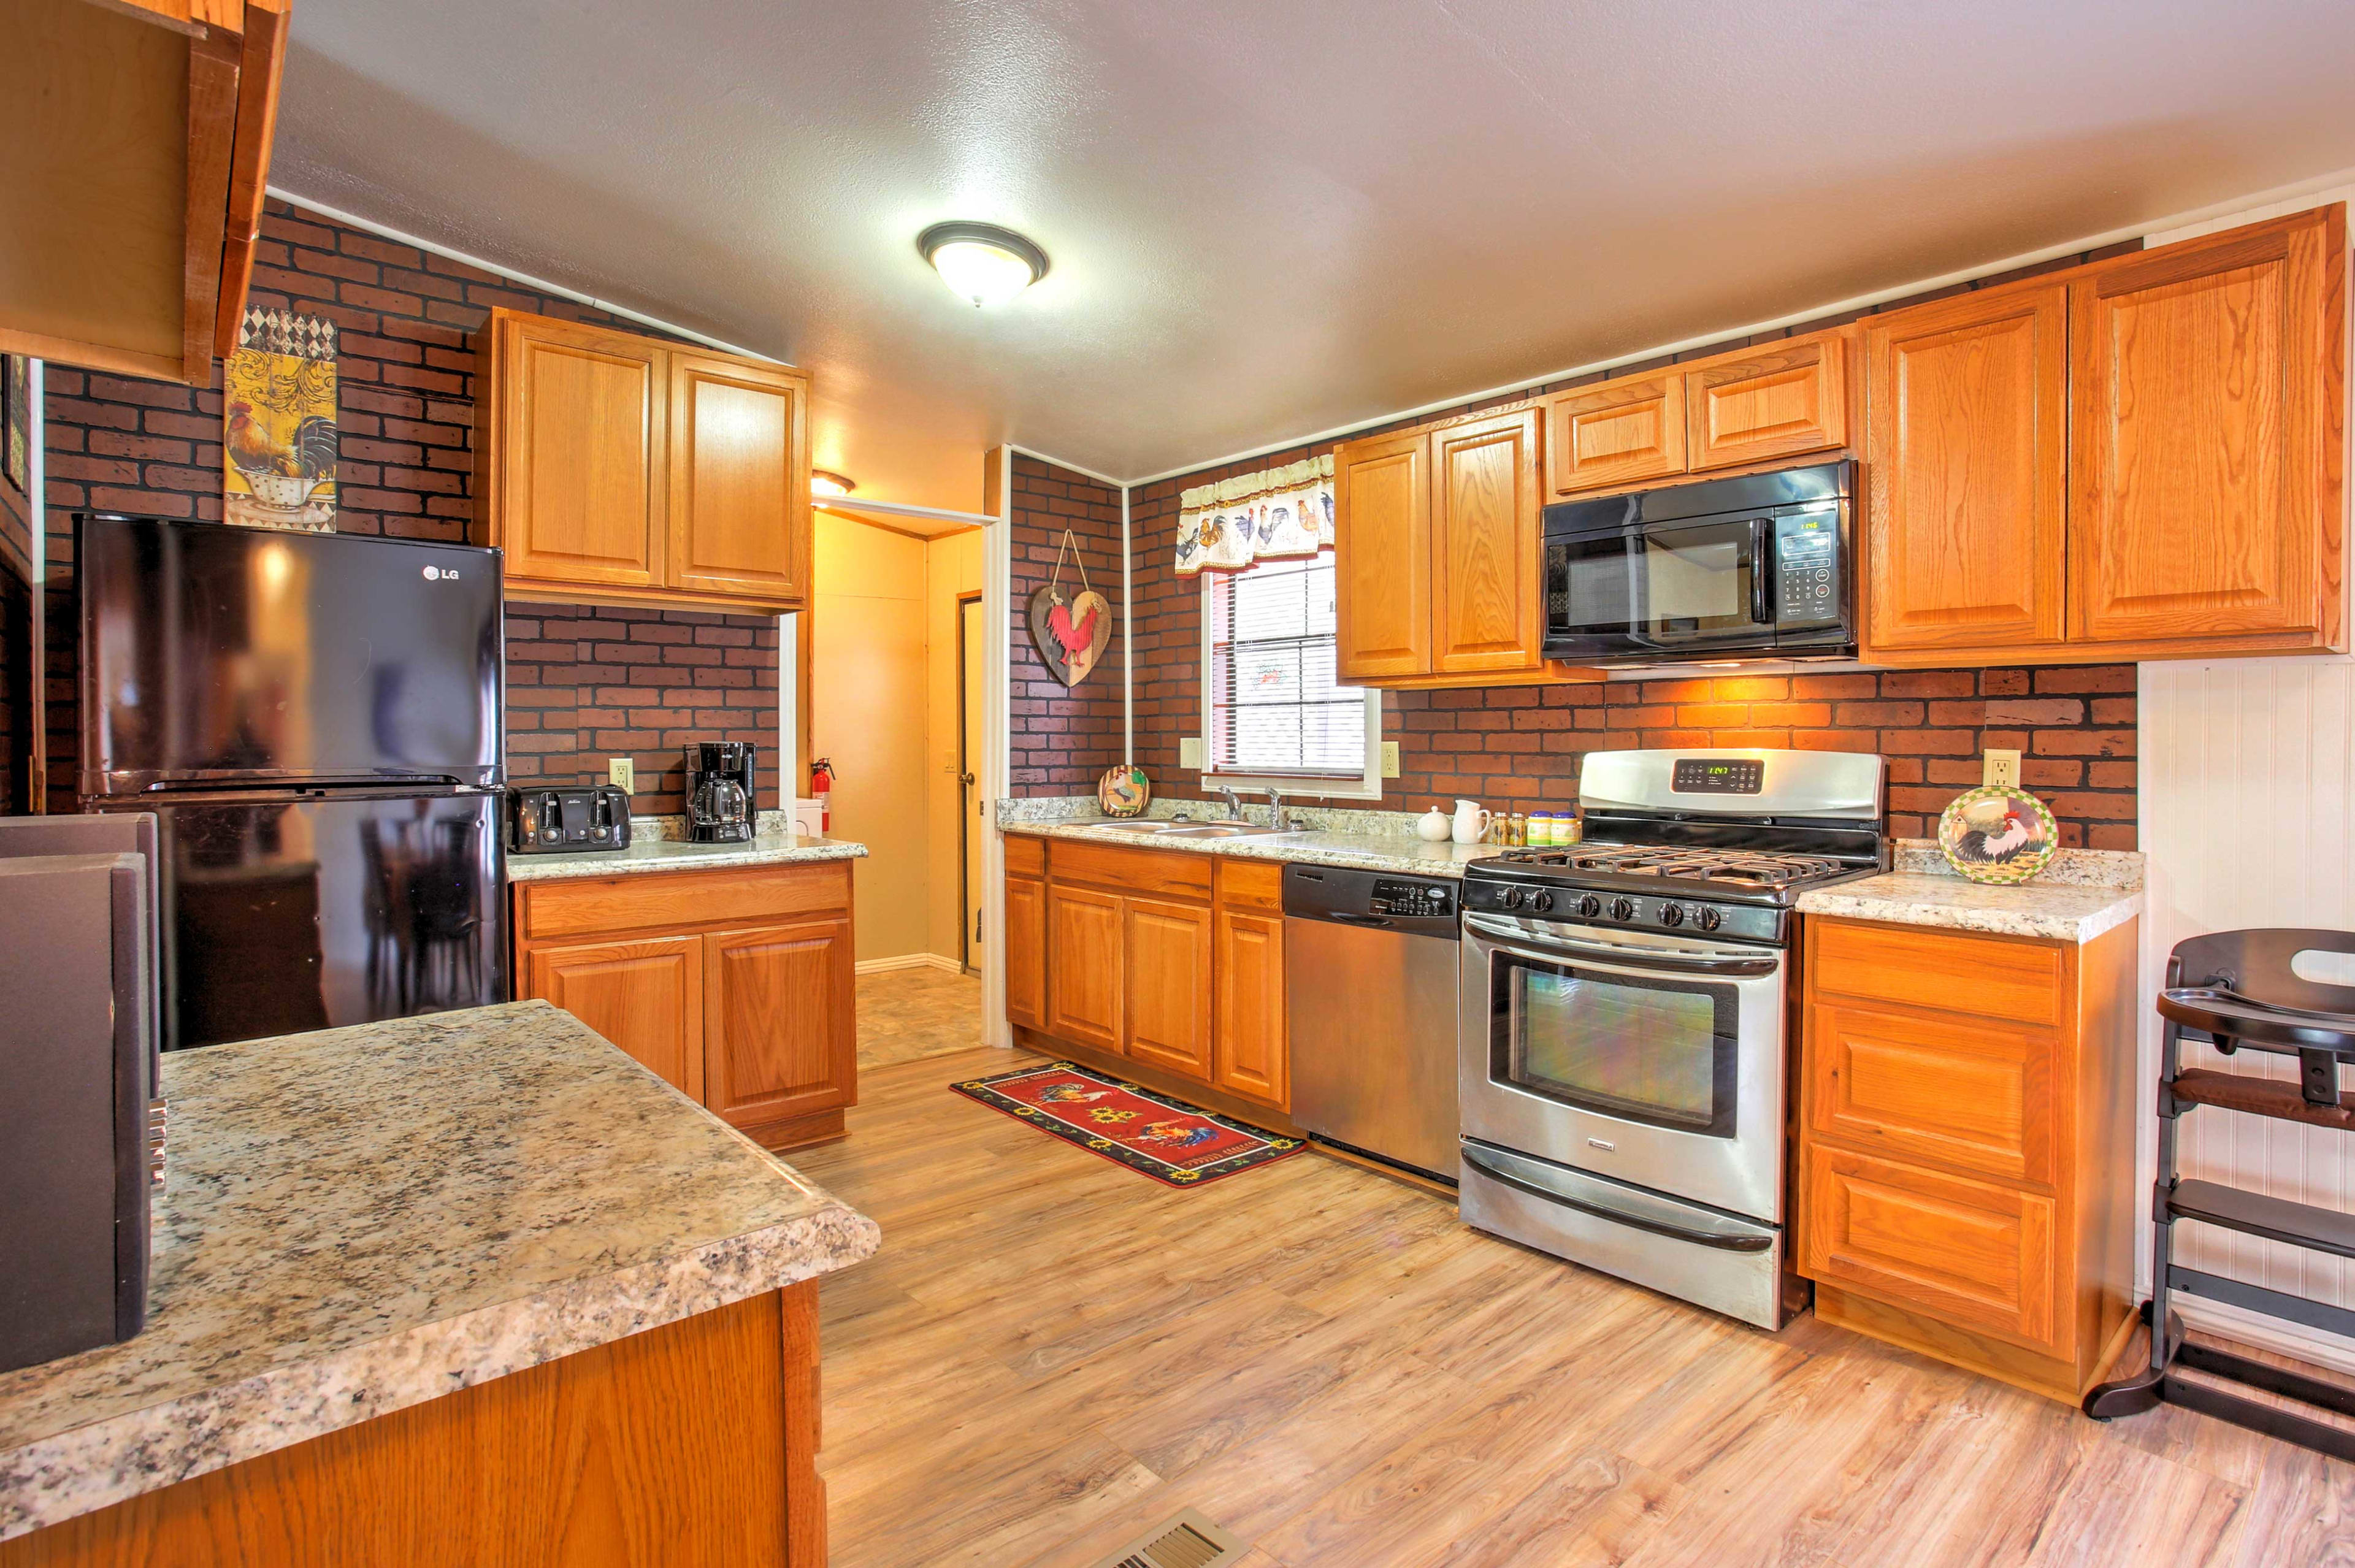 The fully equipped kitchen which features wood cabinets and beautiful countertops has everything you need to make delicious home cooked meals.